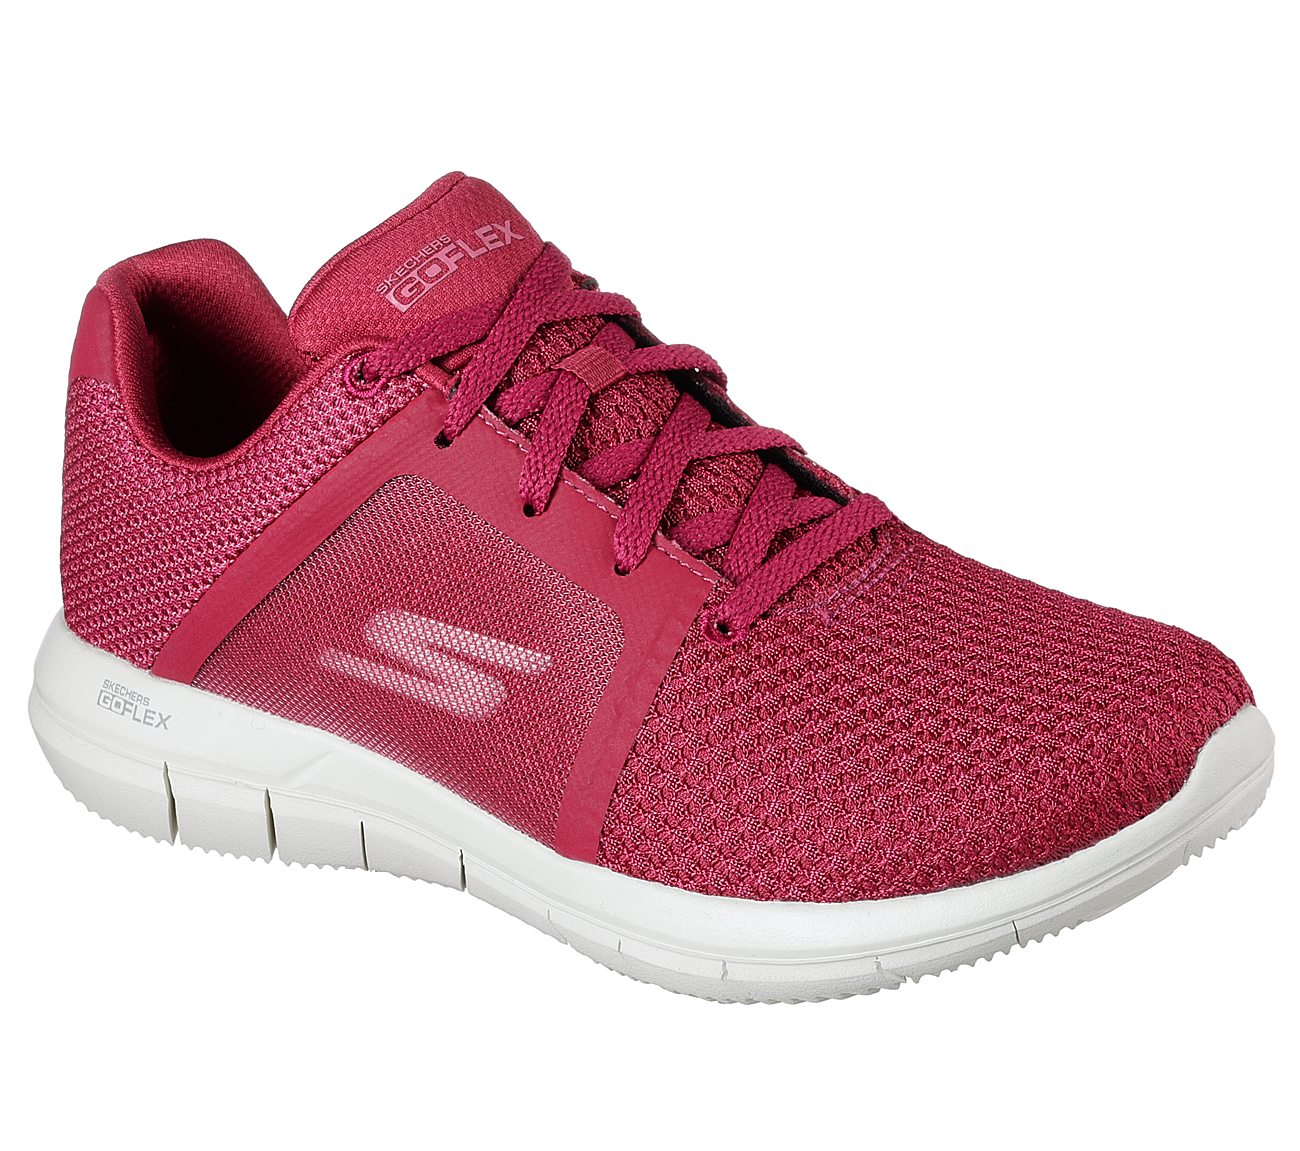 Skechers Women's Go Flex 2 Walking Sneake14990PNK